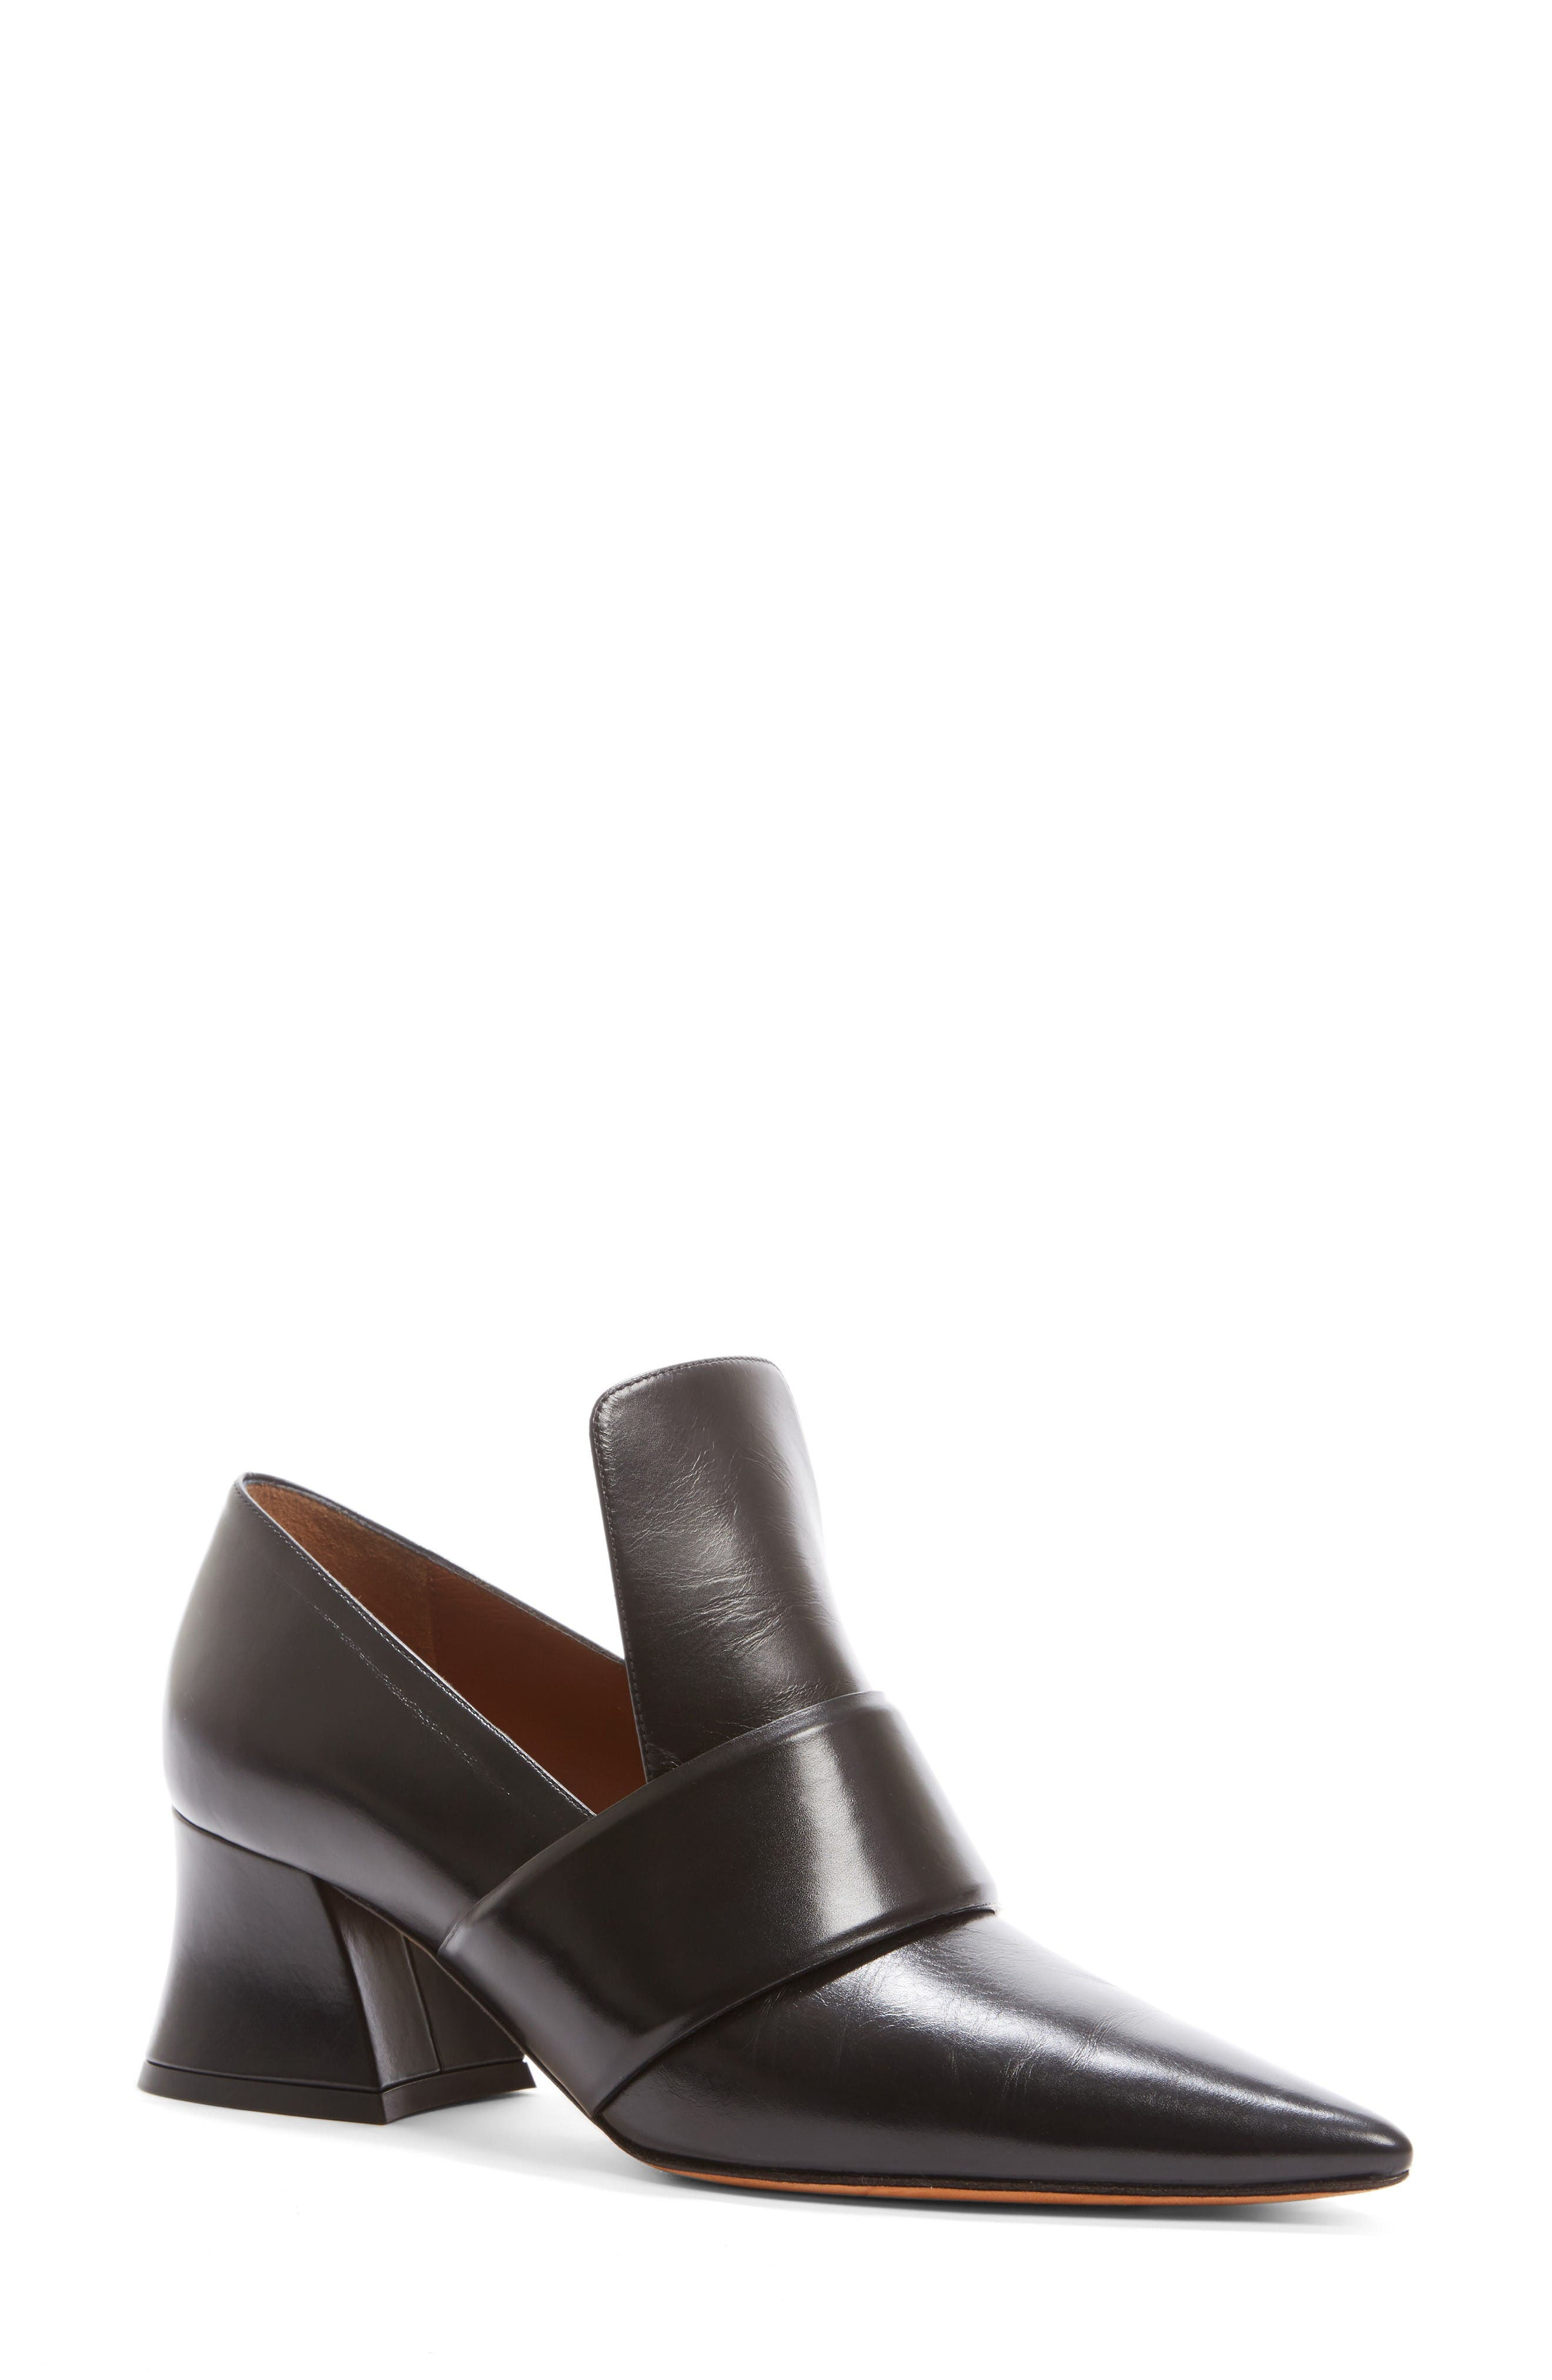 Alternate Image 1 Selected - Givenchy Patricia Pump (Women)